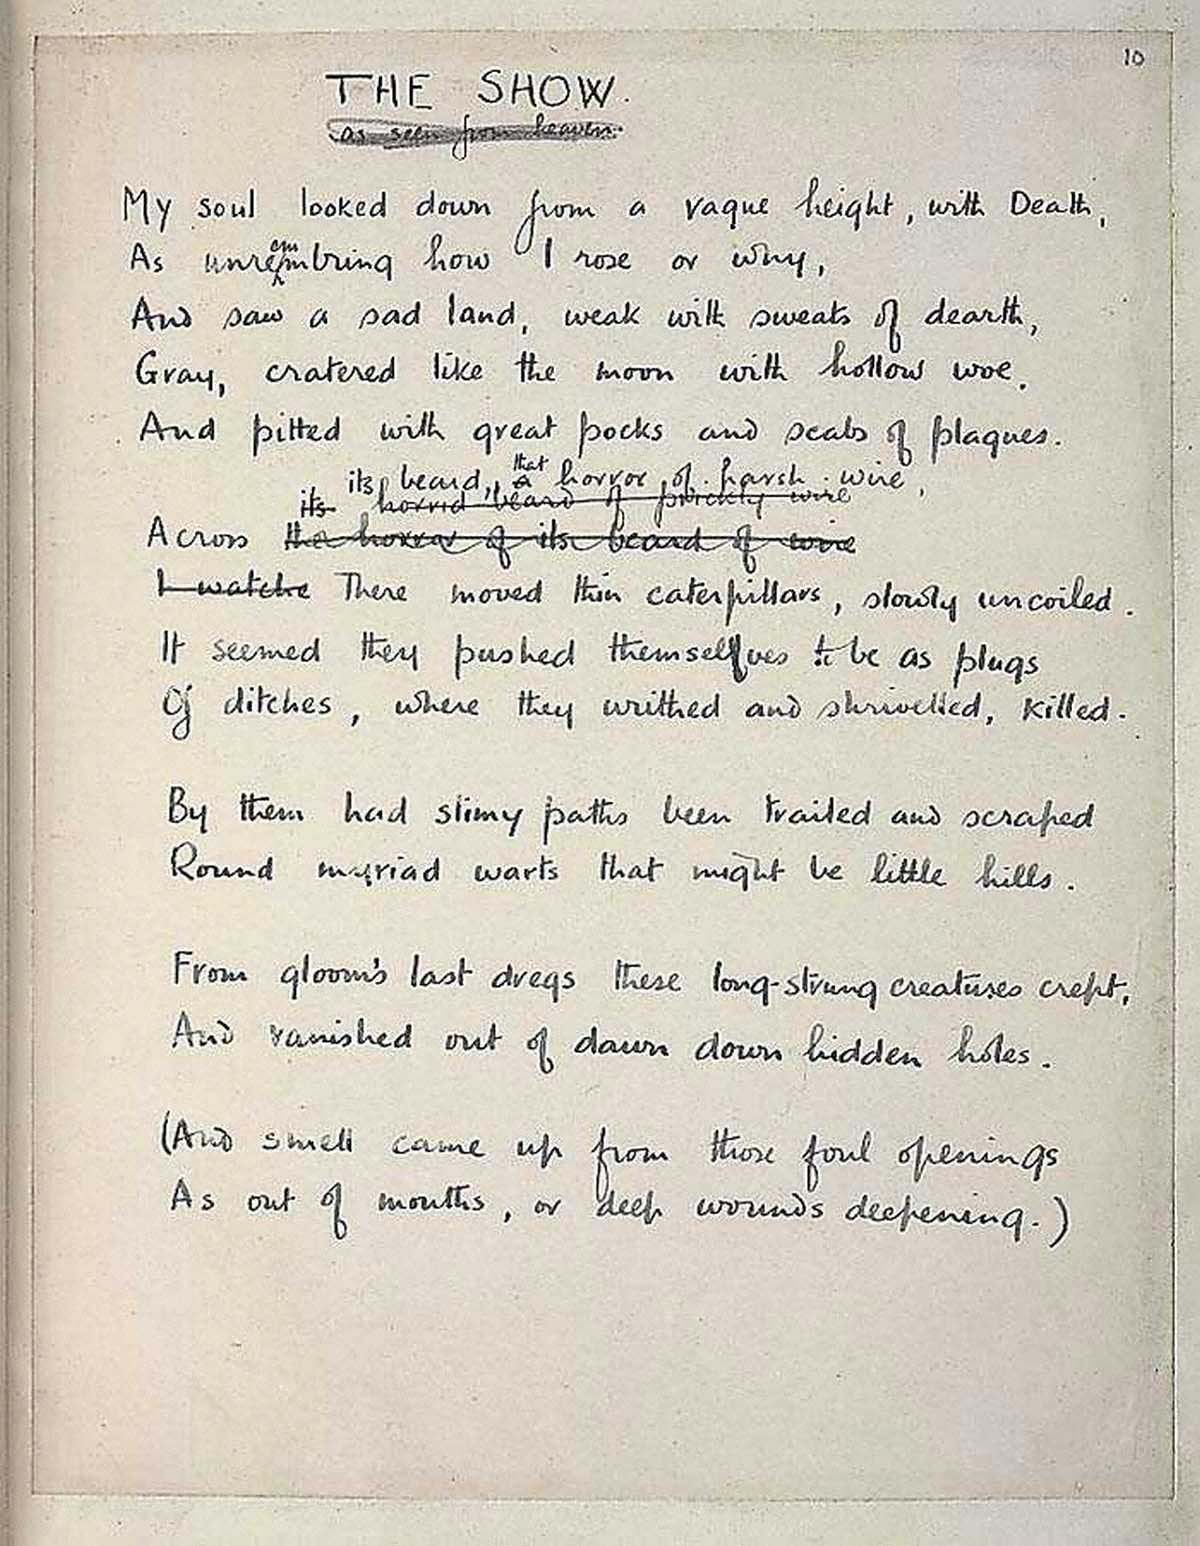 an analysis of the poetry of wilfred owen a world war i poet World war i poetry analysis by matthew dovgan  transcript of world war i poetry analysis by matthew dovgan the call pro patria 2 pro patria was written by owen seaman 3 this poem was written in 1914  important line in the poem because i would not join an army unless i knew there would be big benefits for me after the war 2 futility.